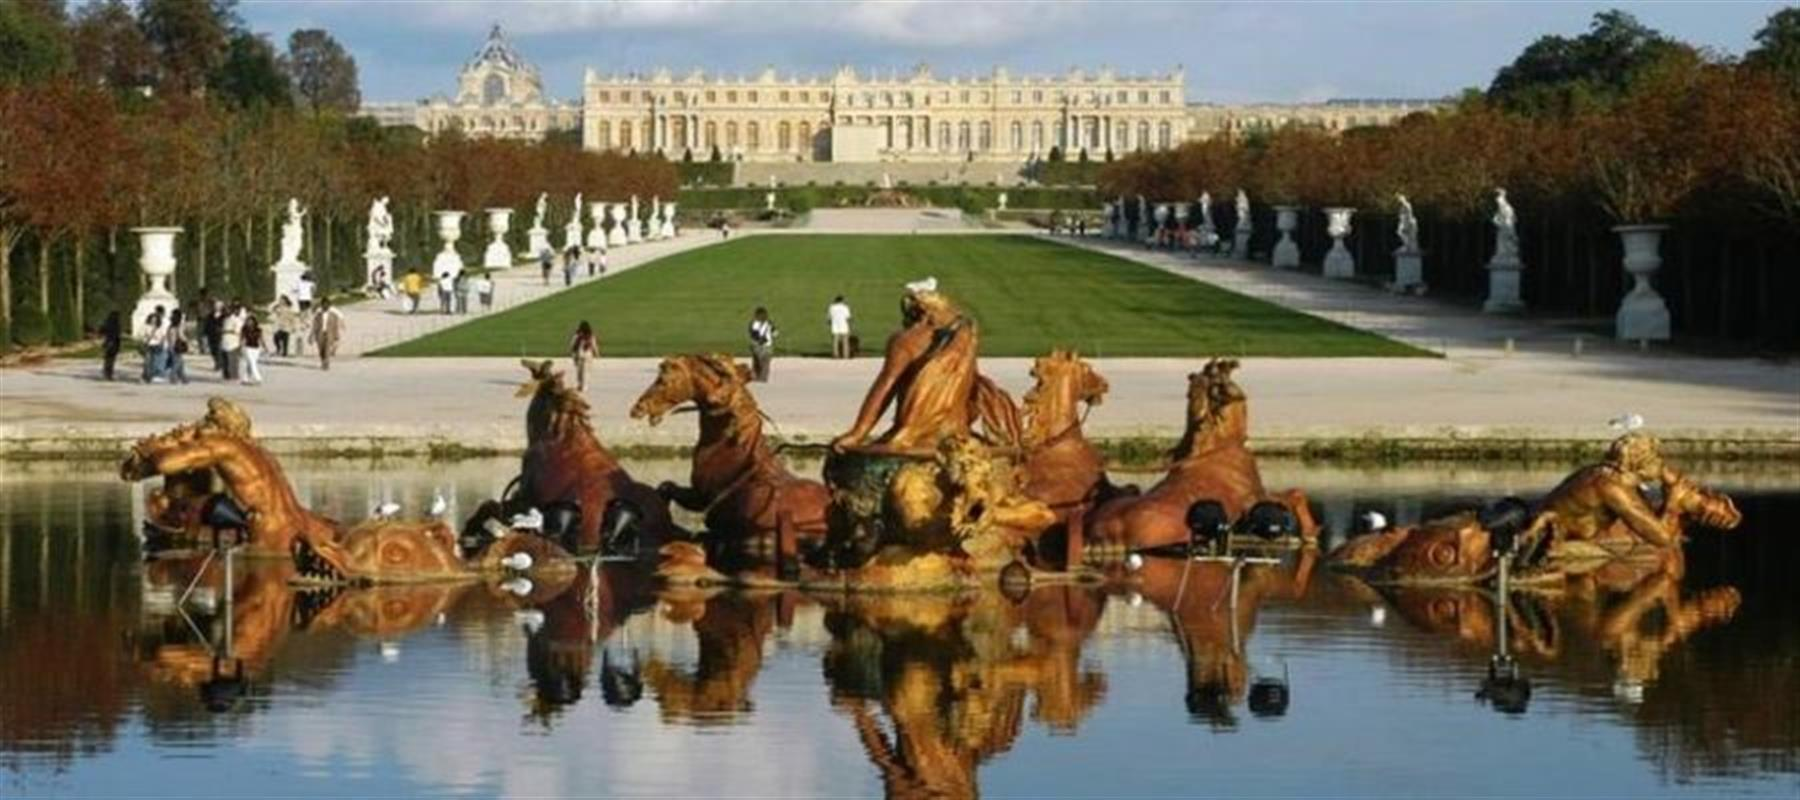 www visite chateau de versailles chateau u montellier. Black Bedroom Furniture Sets. Home Design Ideas